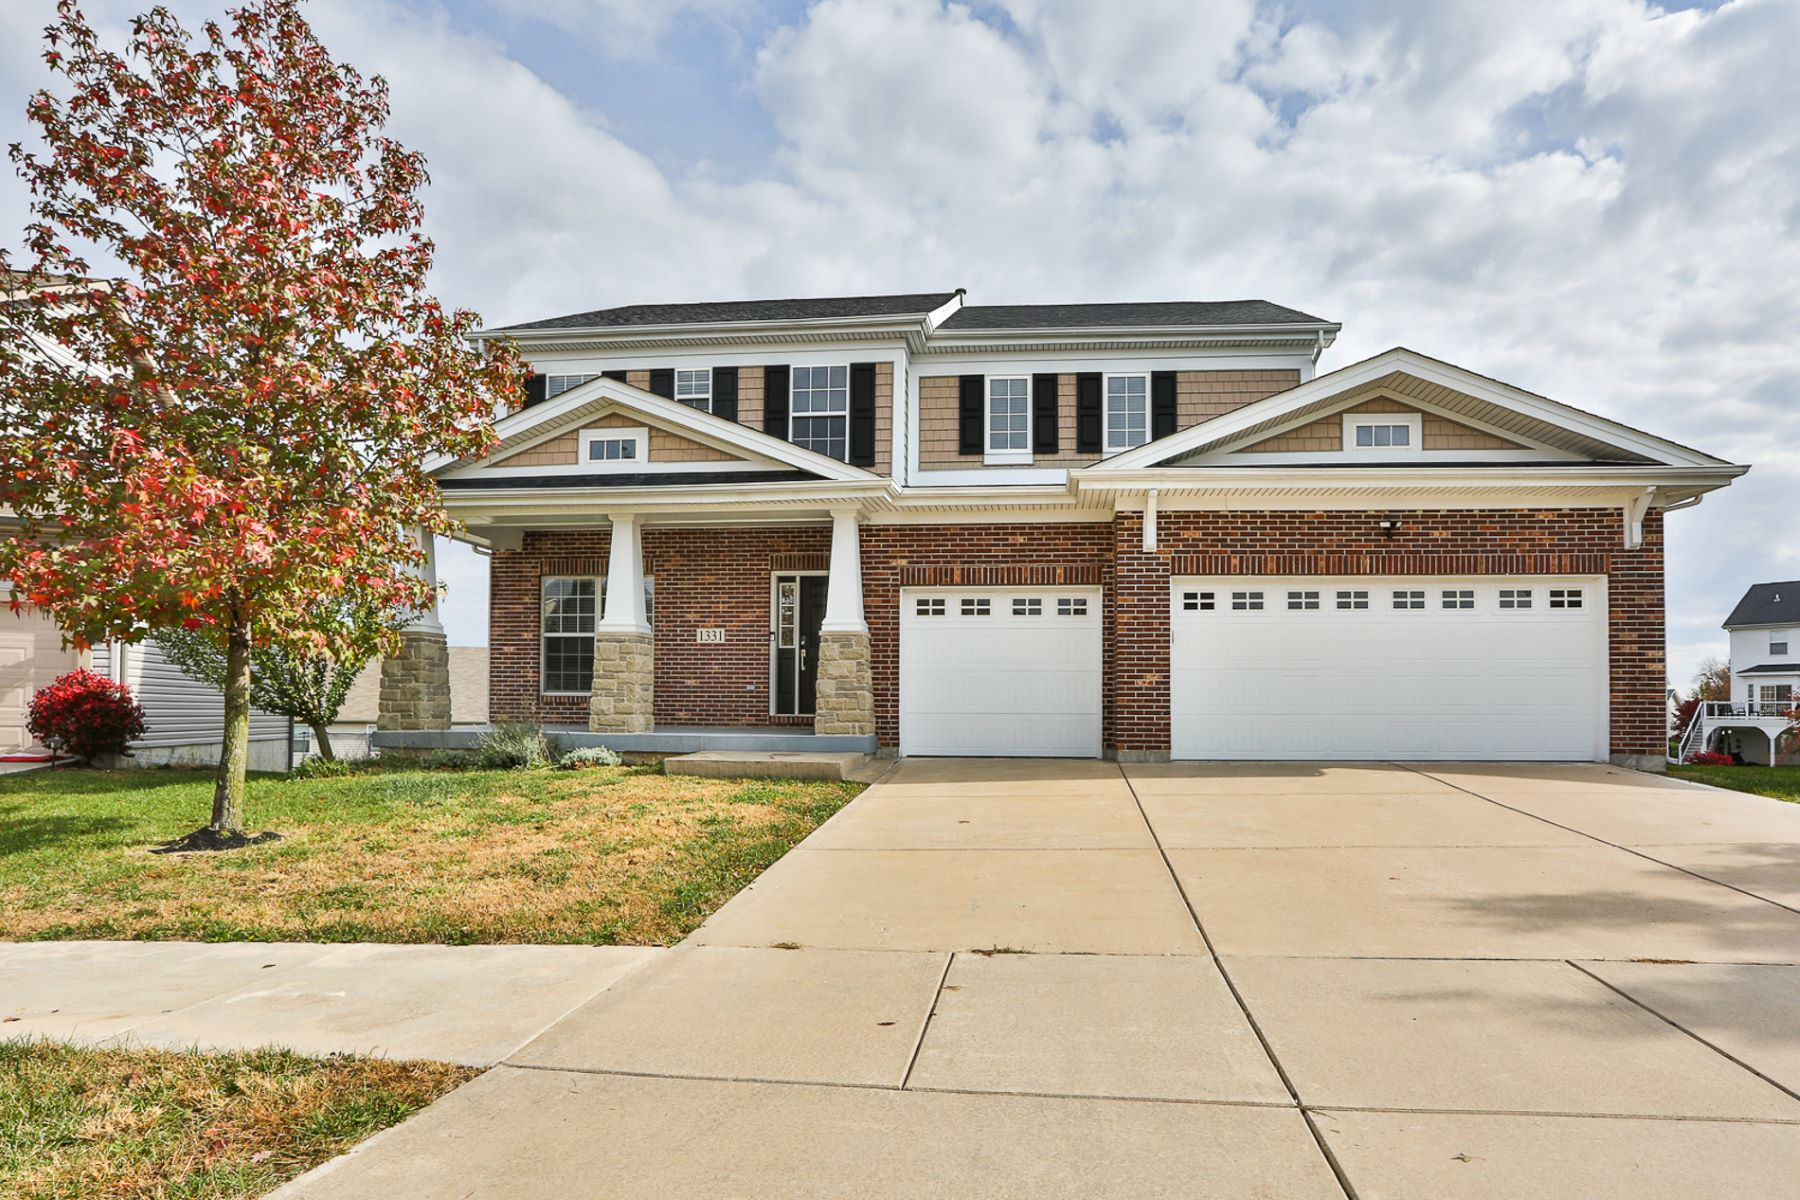 Single Family Home for Sale at Shorewinds Trail 1331 Shorewinds Trail St. Charles, Missouri 63303 United States